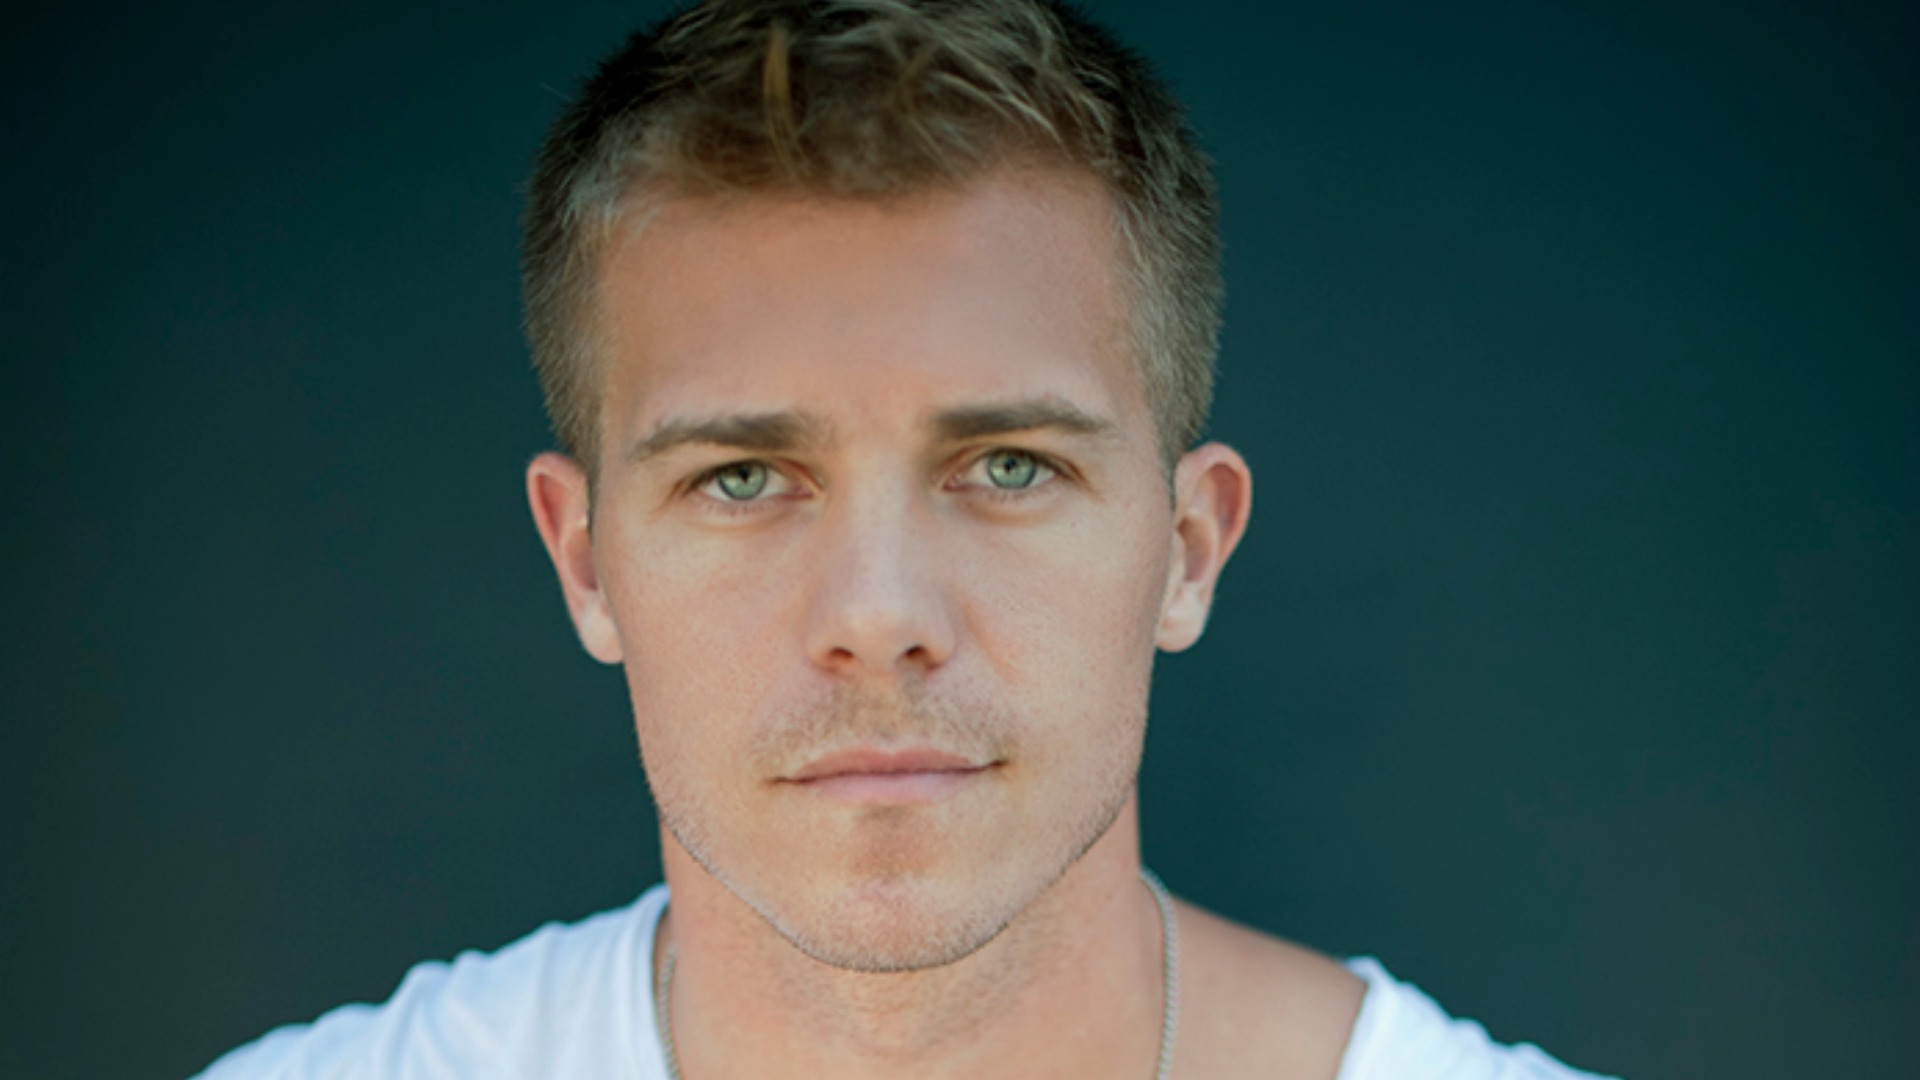 Michael Roark opens up about his role on The Young and the Restless.